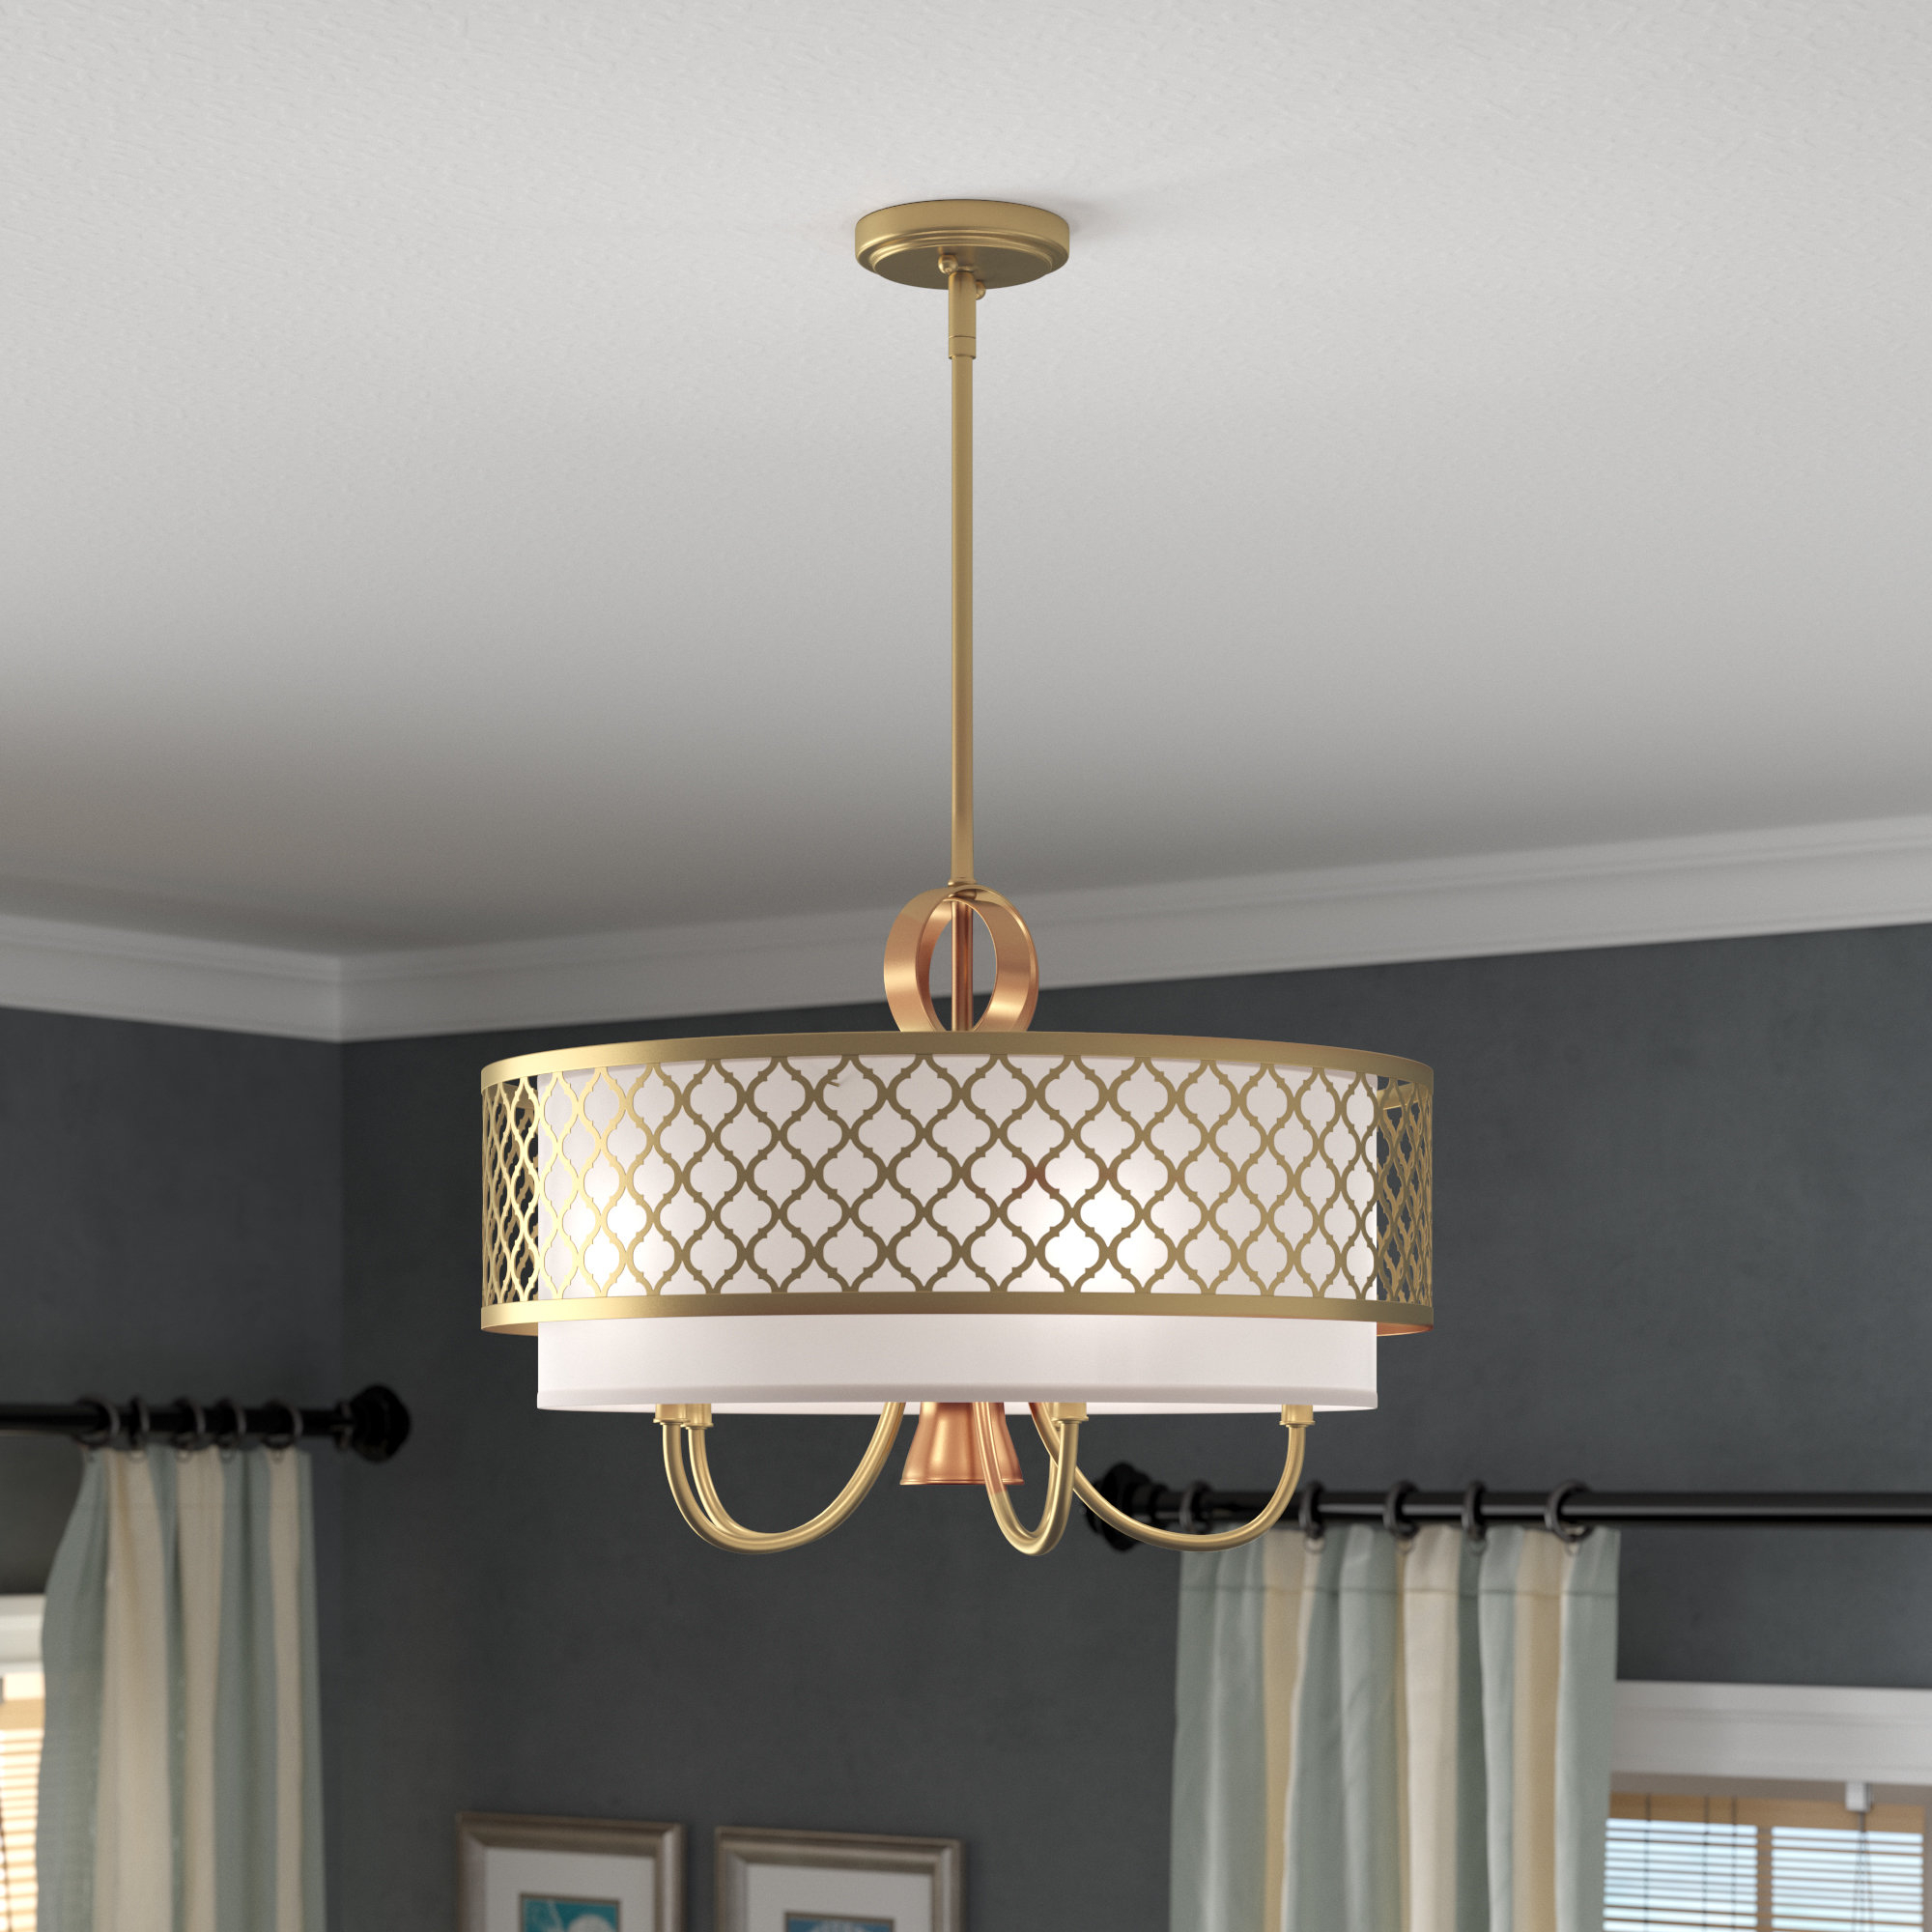 Tymvou 5 Light Drum Chandelier In Widely Used Abel 5 Light Drum Chandeliers (View 3 of 20)